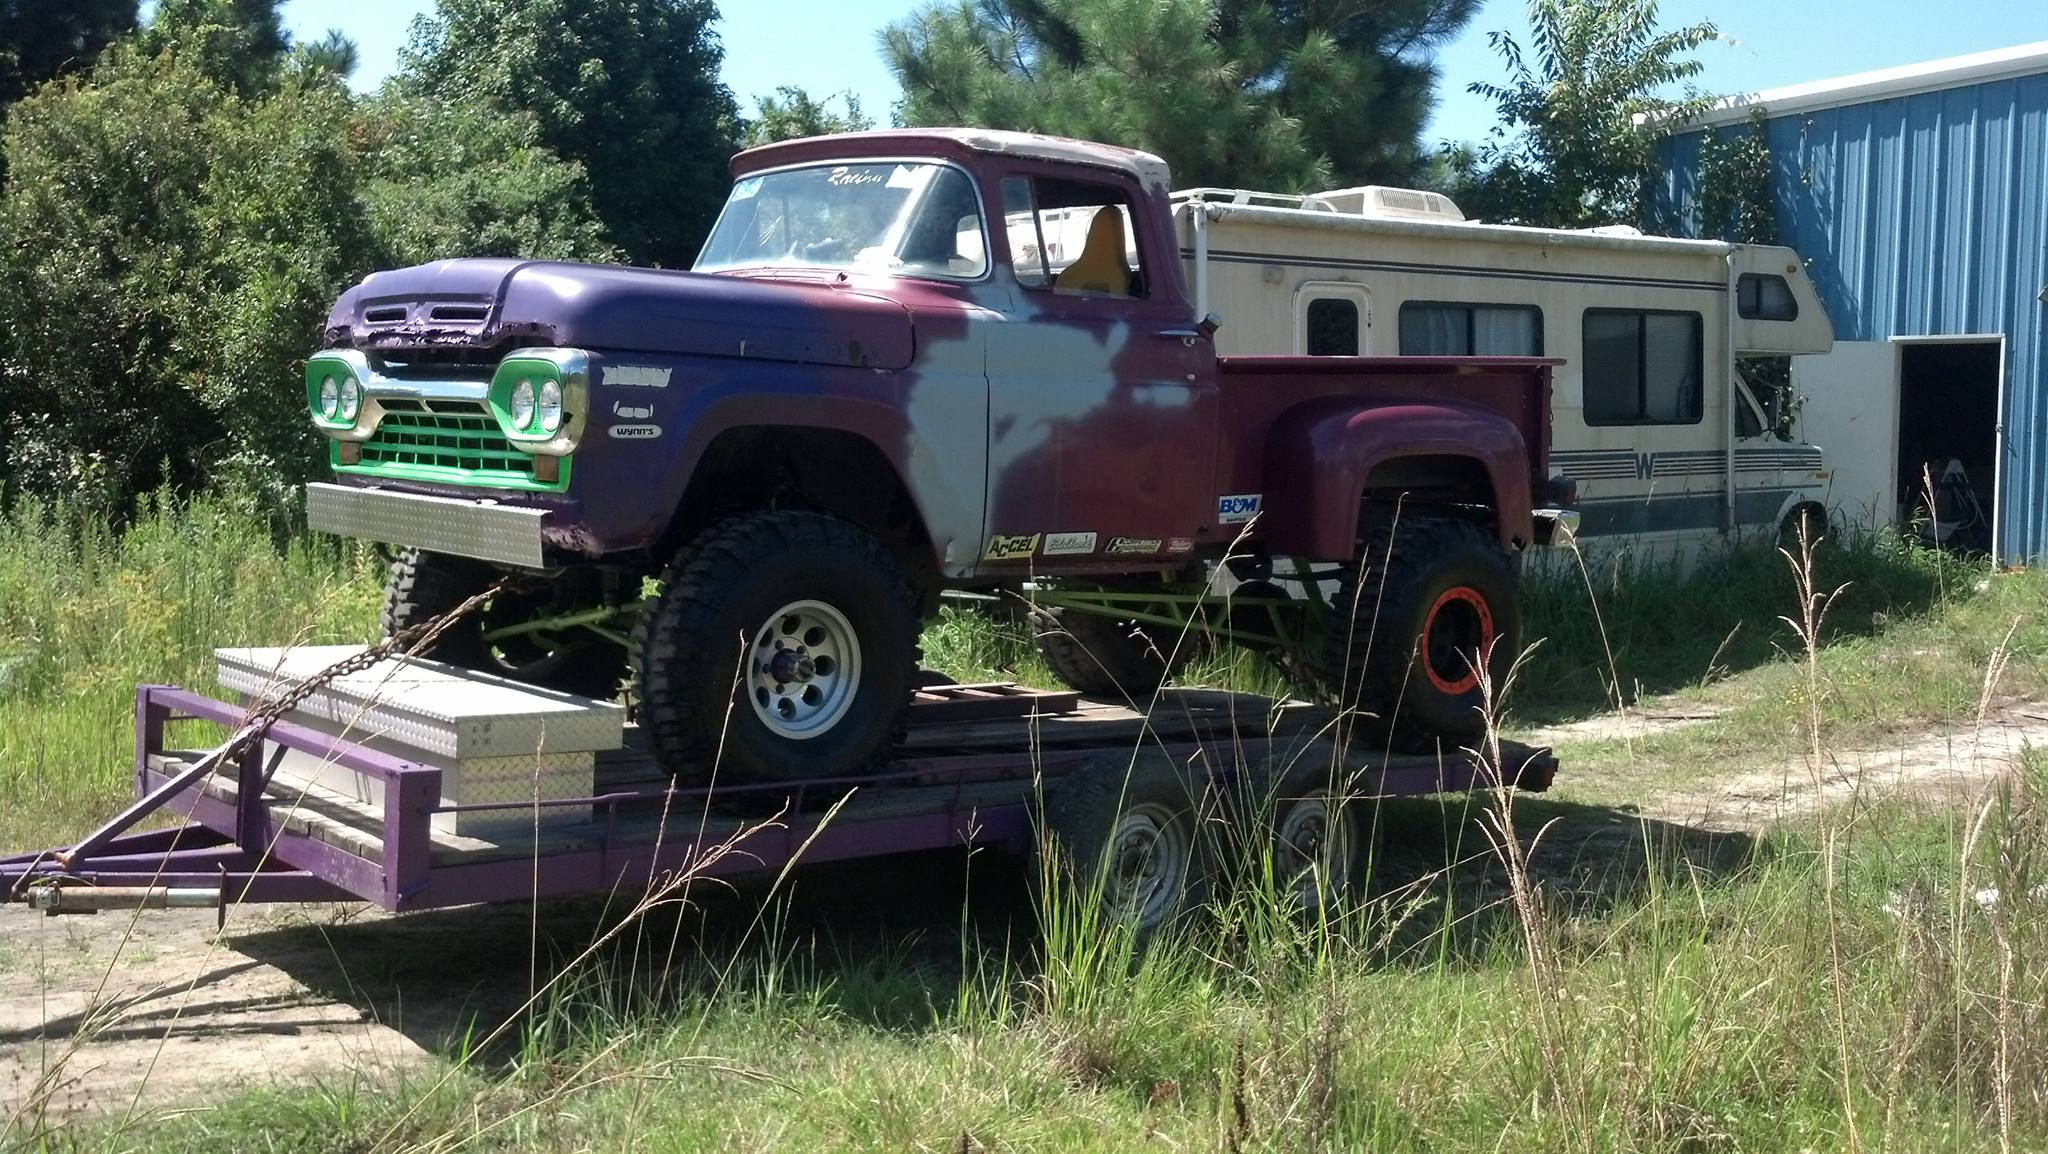 From Levy Bubba Lilly: the JOKER it is a 1960 f-100 with a 429 super cobra-jet